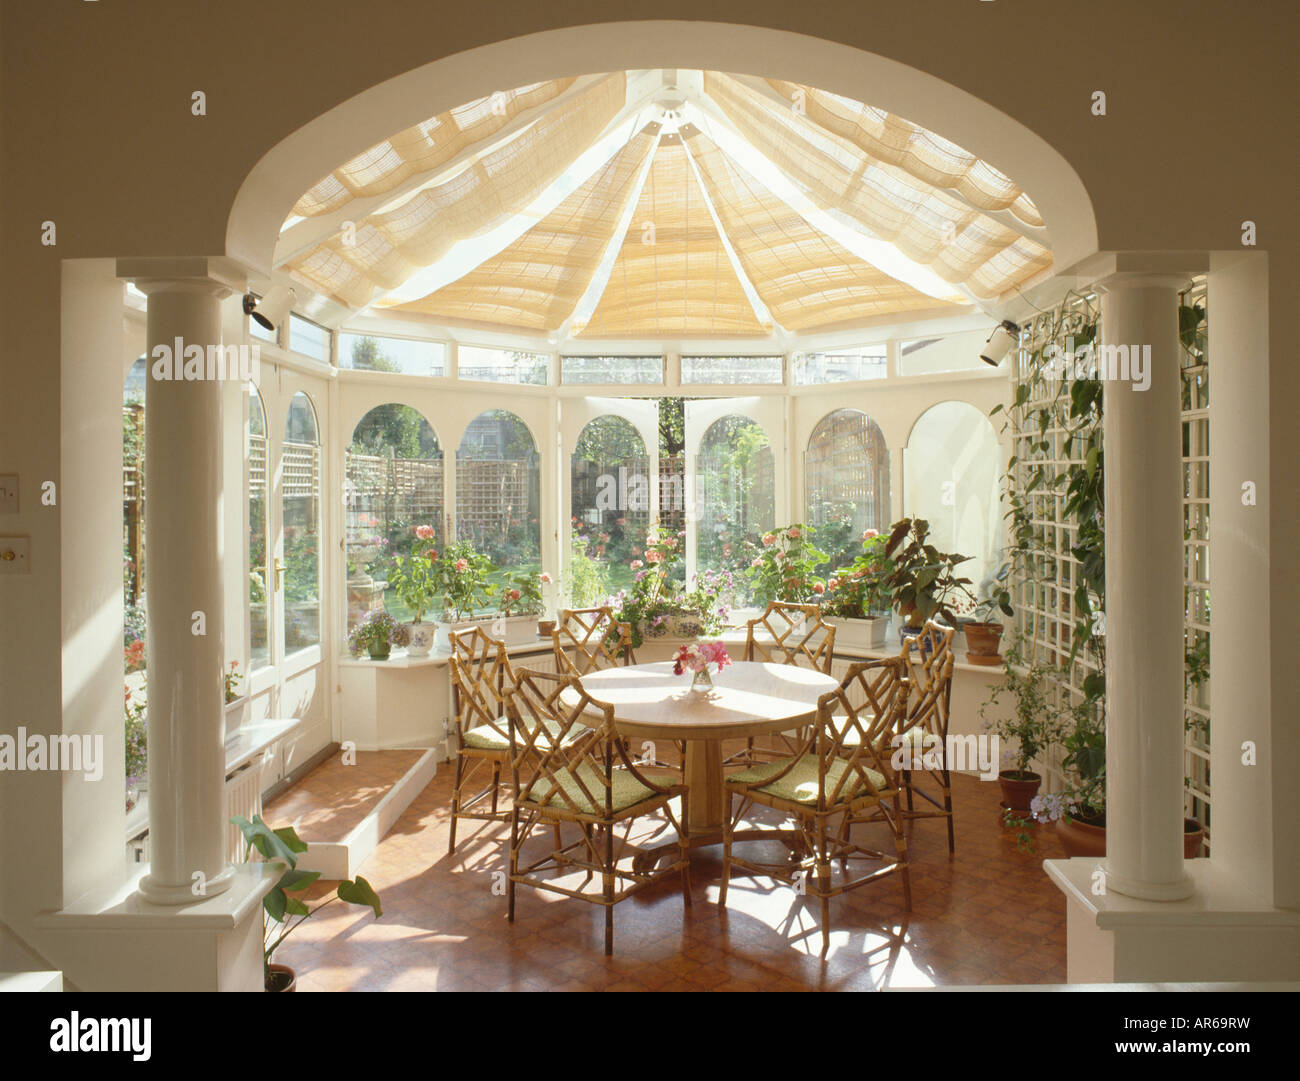 classical pillars in conservatory dining room with split. Black Bedroom Furniture Sets. Home Design Ideas